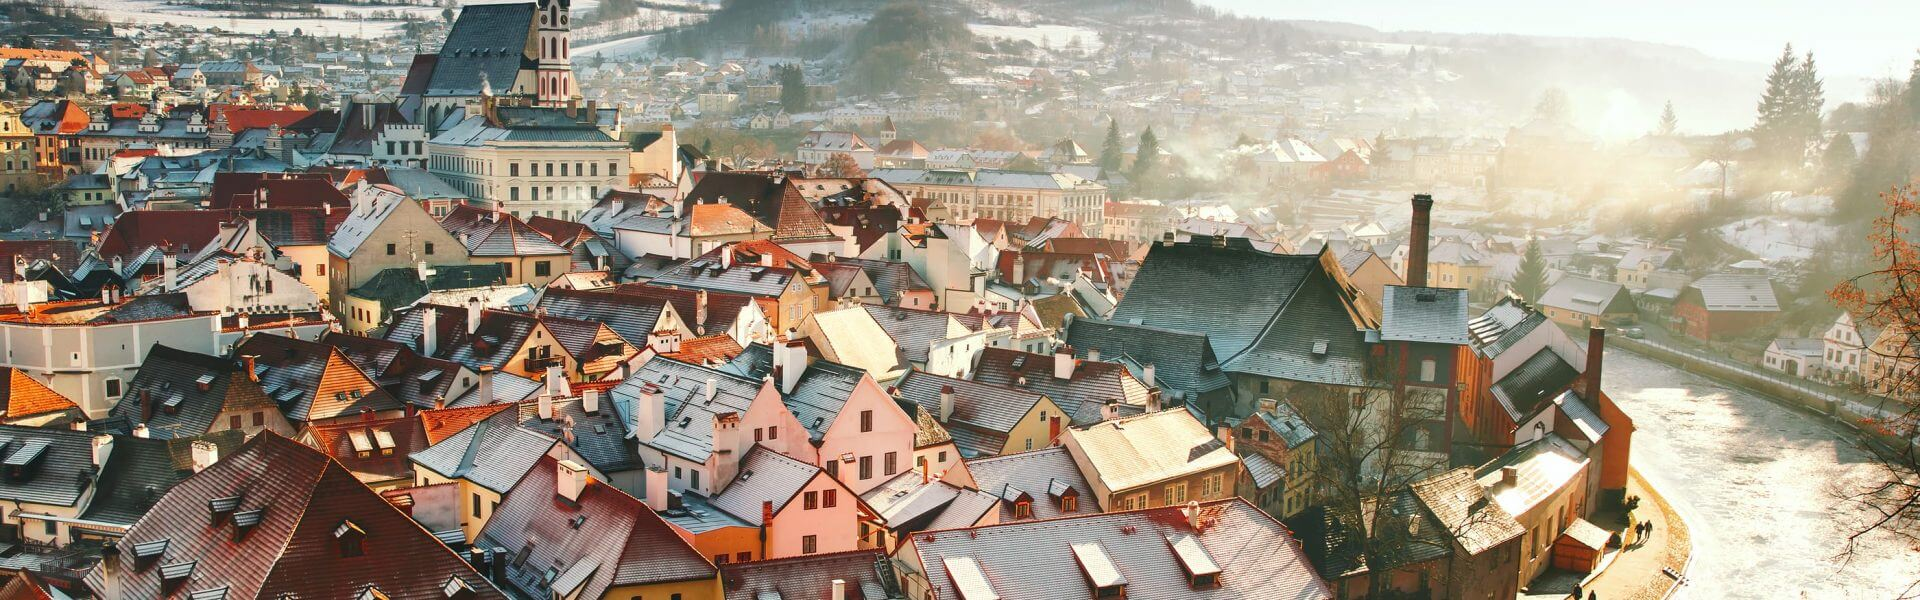 The town of Český Krumlov in the Czech Republic. Photo: Bigstock